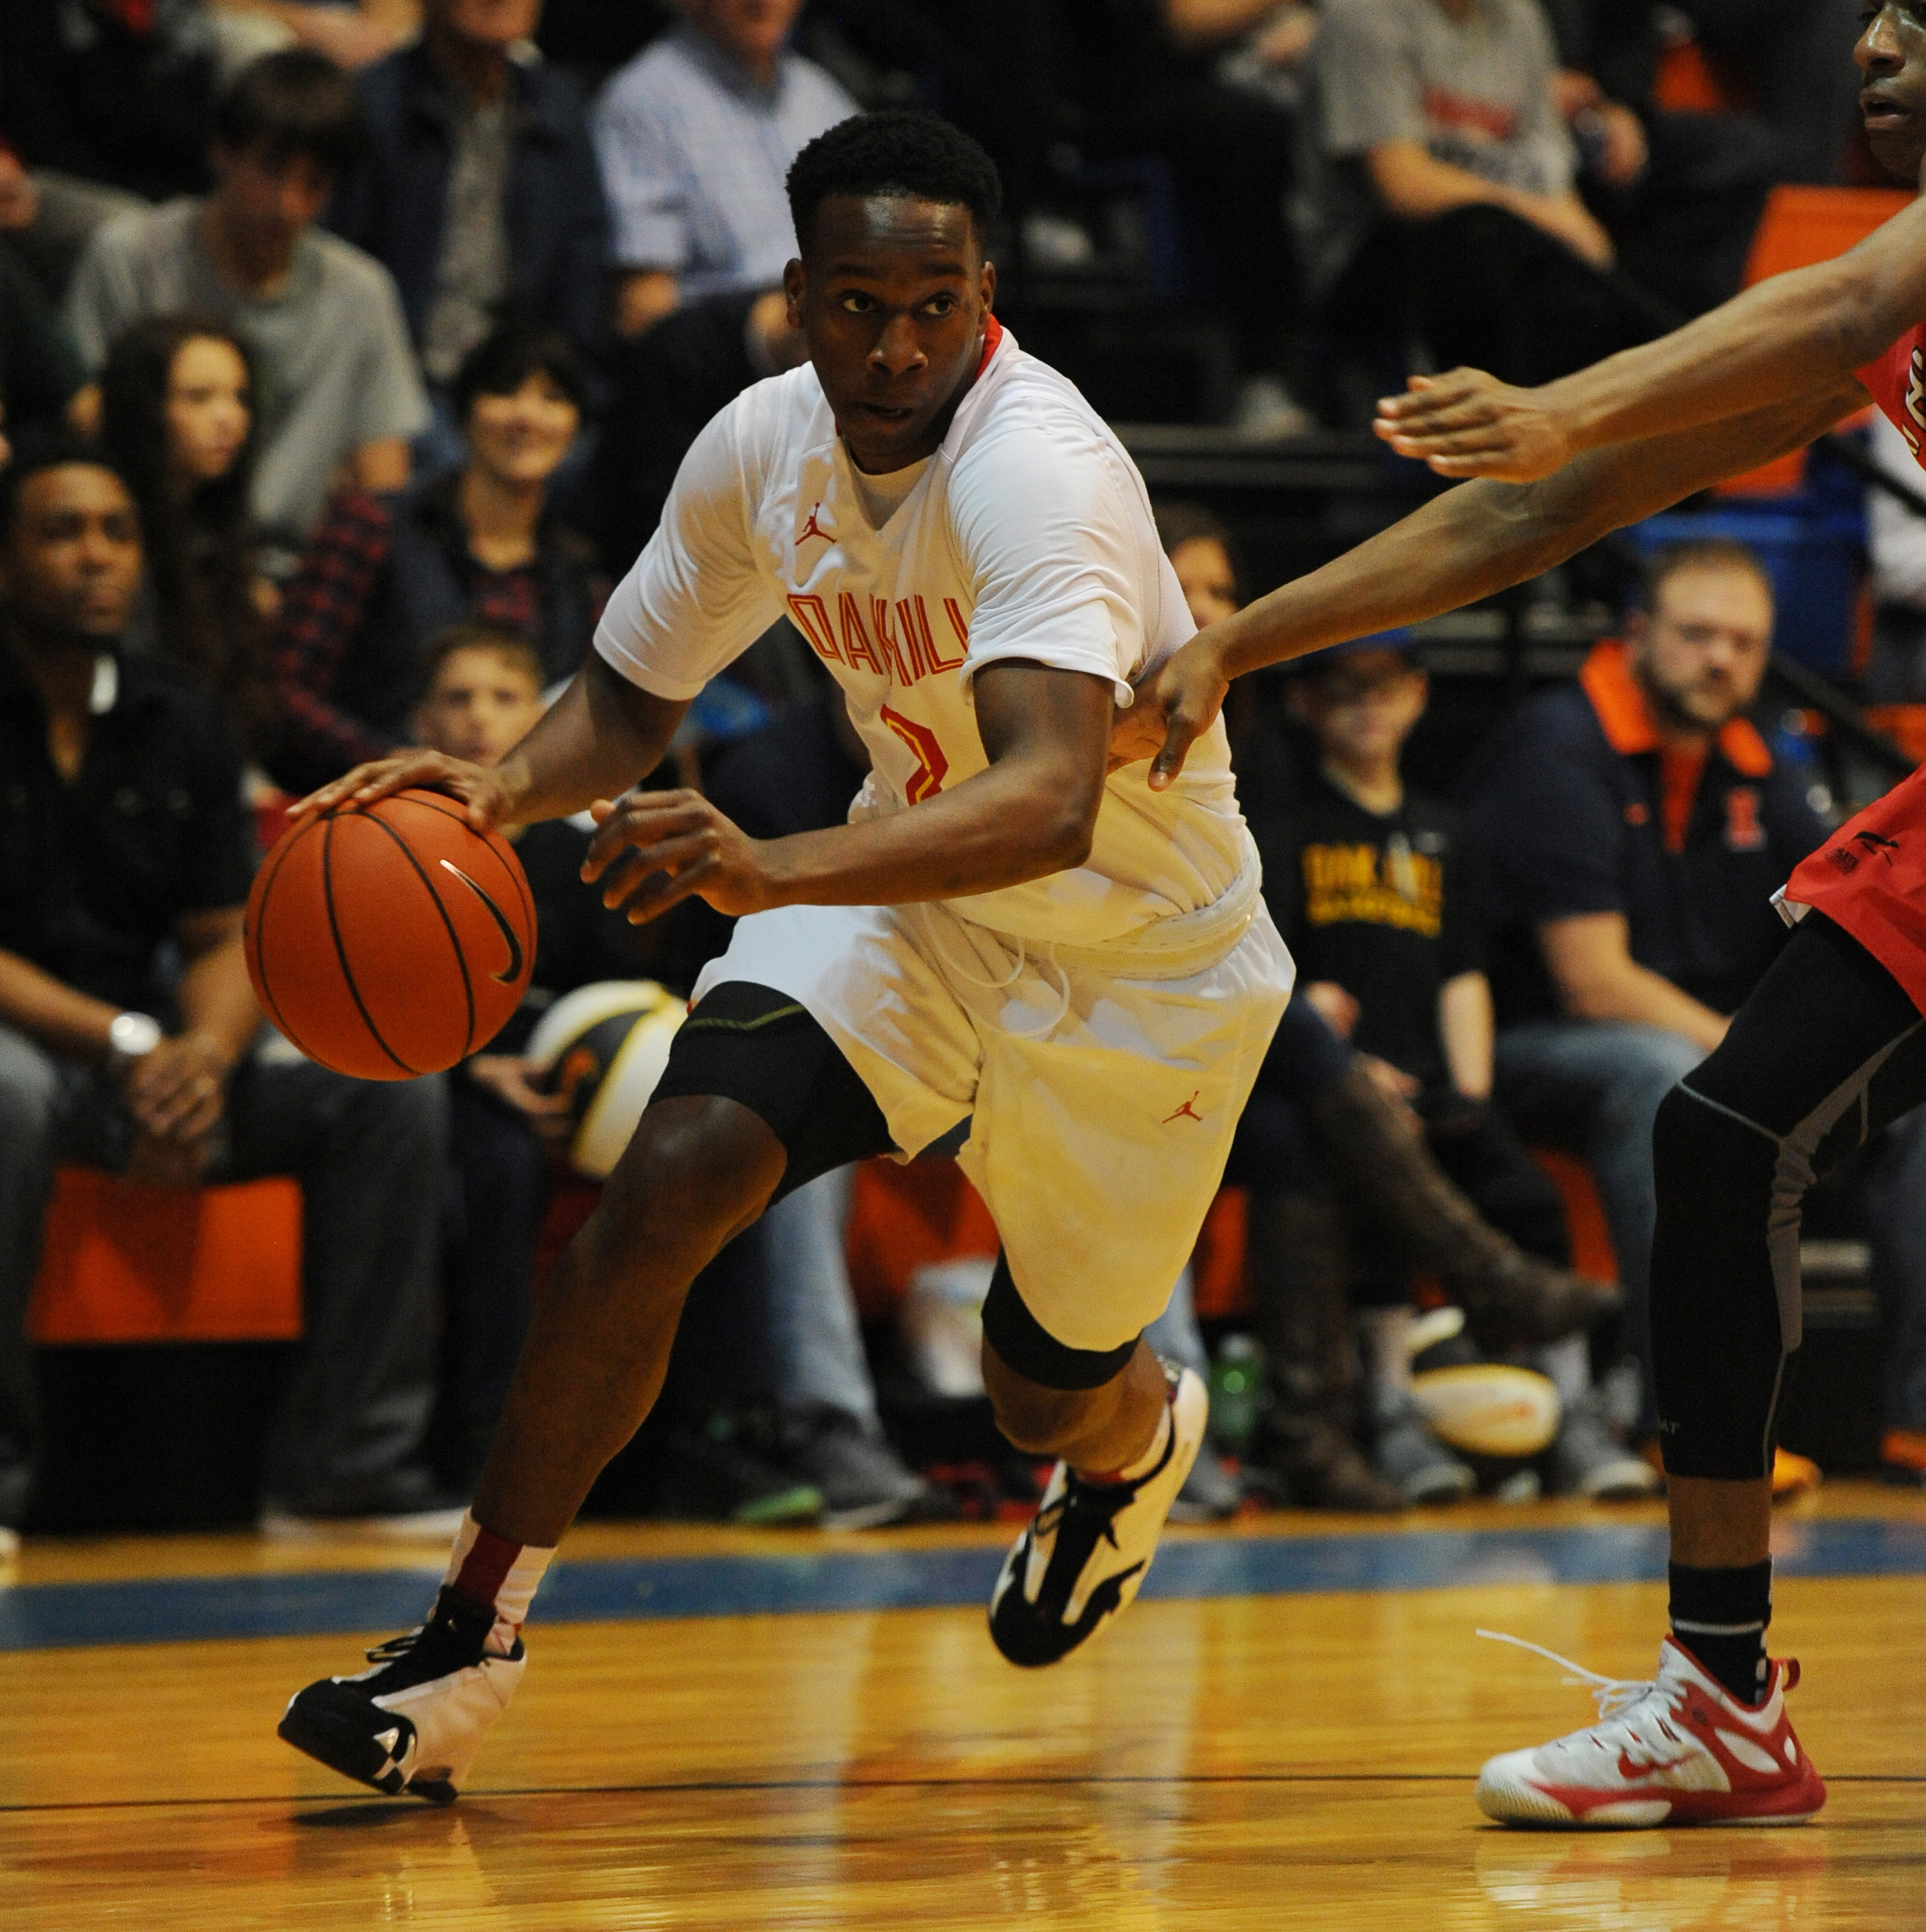 12/5/15 6:39:05 PM -- Benton, KY, U.S.A -- Oak Hill Academy guard Matt Coleman (2) dribbles toward the basket during the first half against Athlete Institute at the Grind Session basketball tournament. -- Photo by Christopher Hanewinckel USA TODAY Sports Images, Gannett ORG XMIT: US 134138 Grind Hoops 12/5/2015 [Via MerlinFTP Drop]